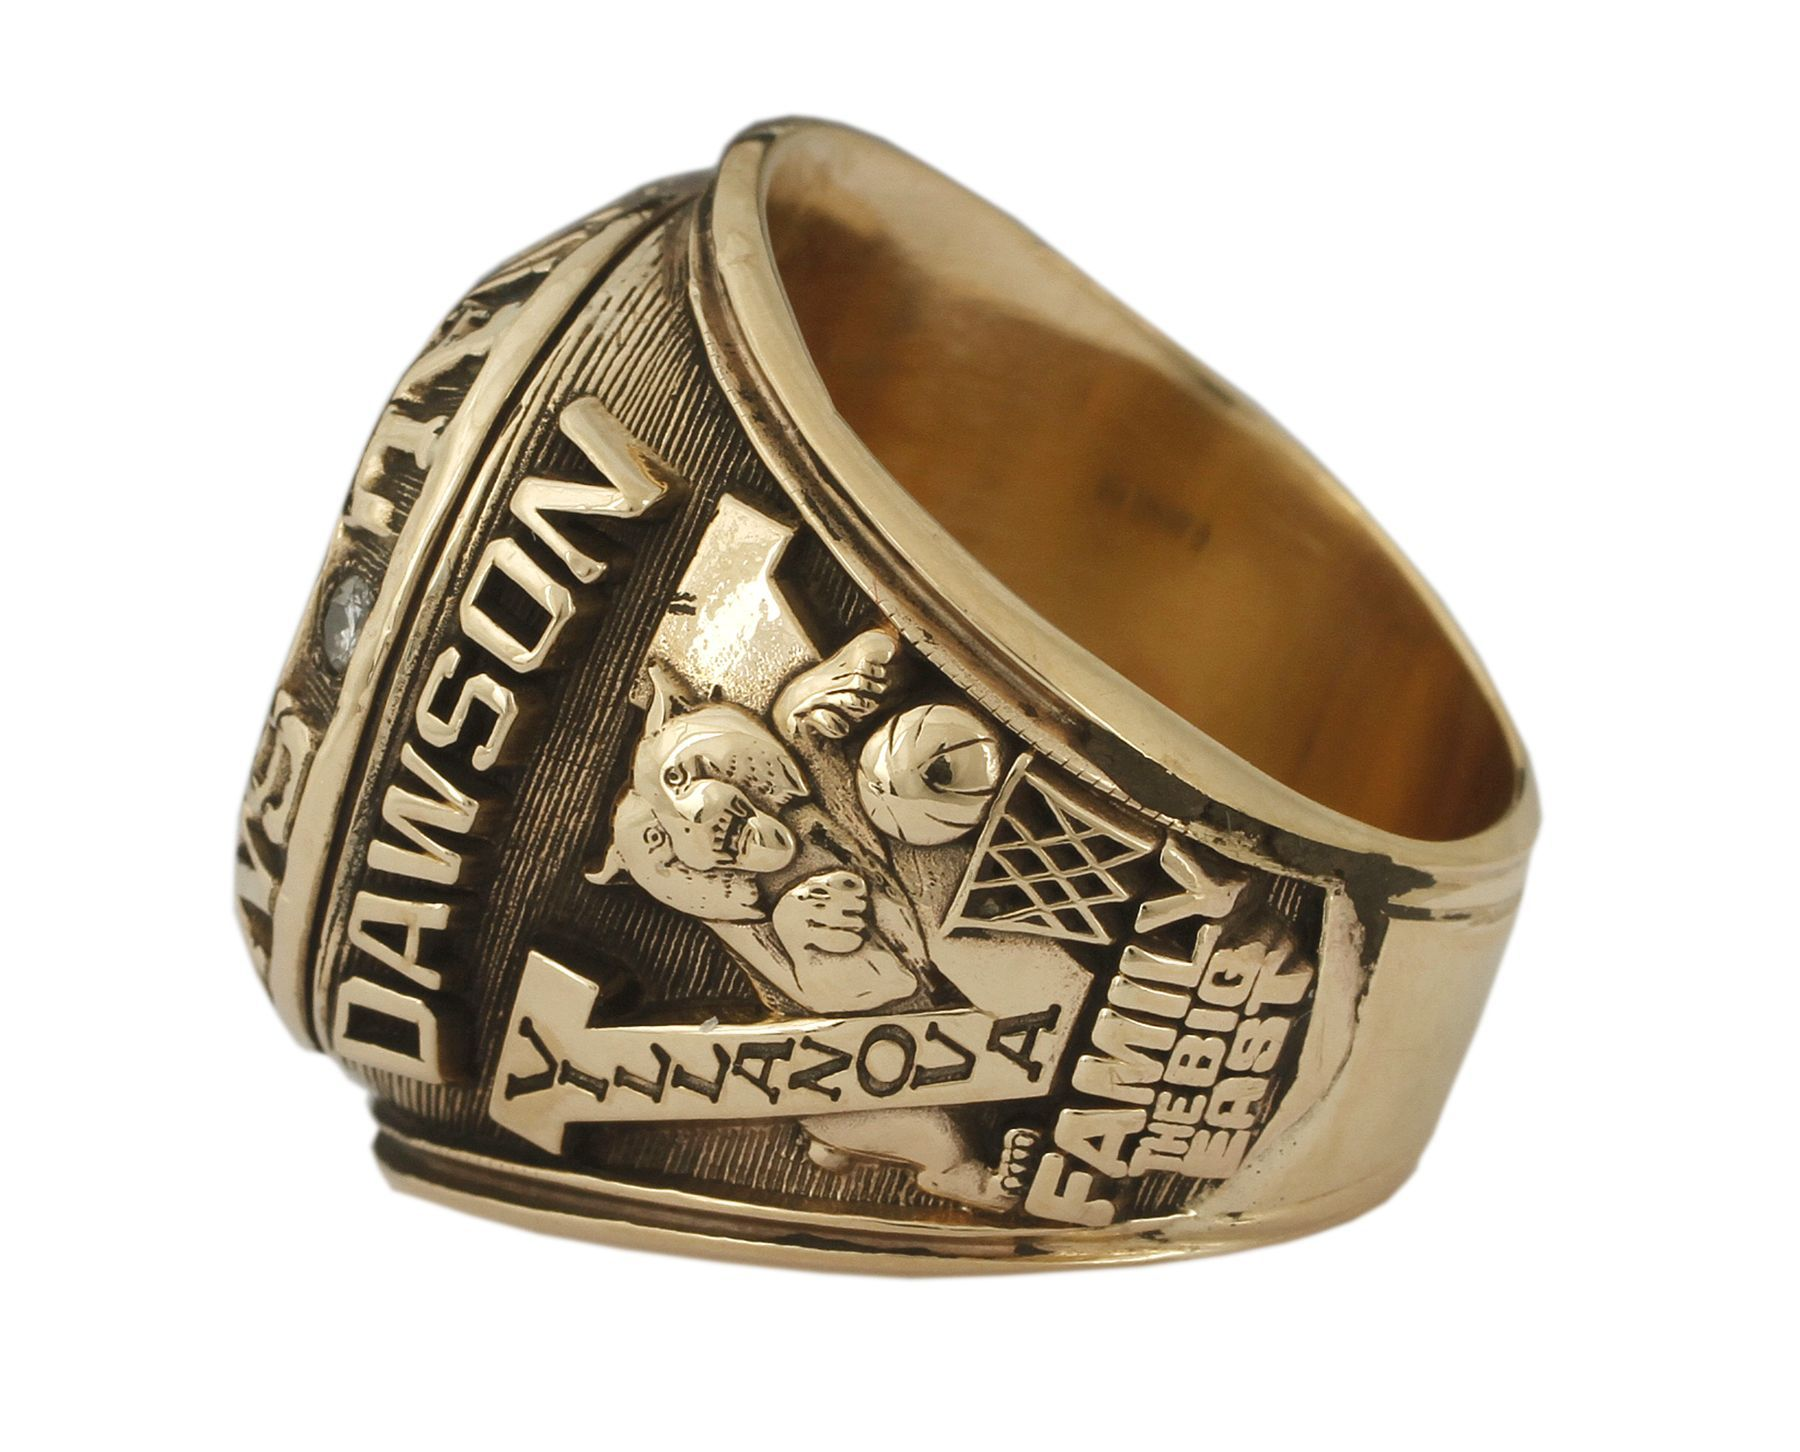 pl cgi store orleans new rings memorabilia saints nfl bin sports